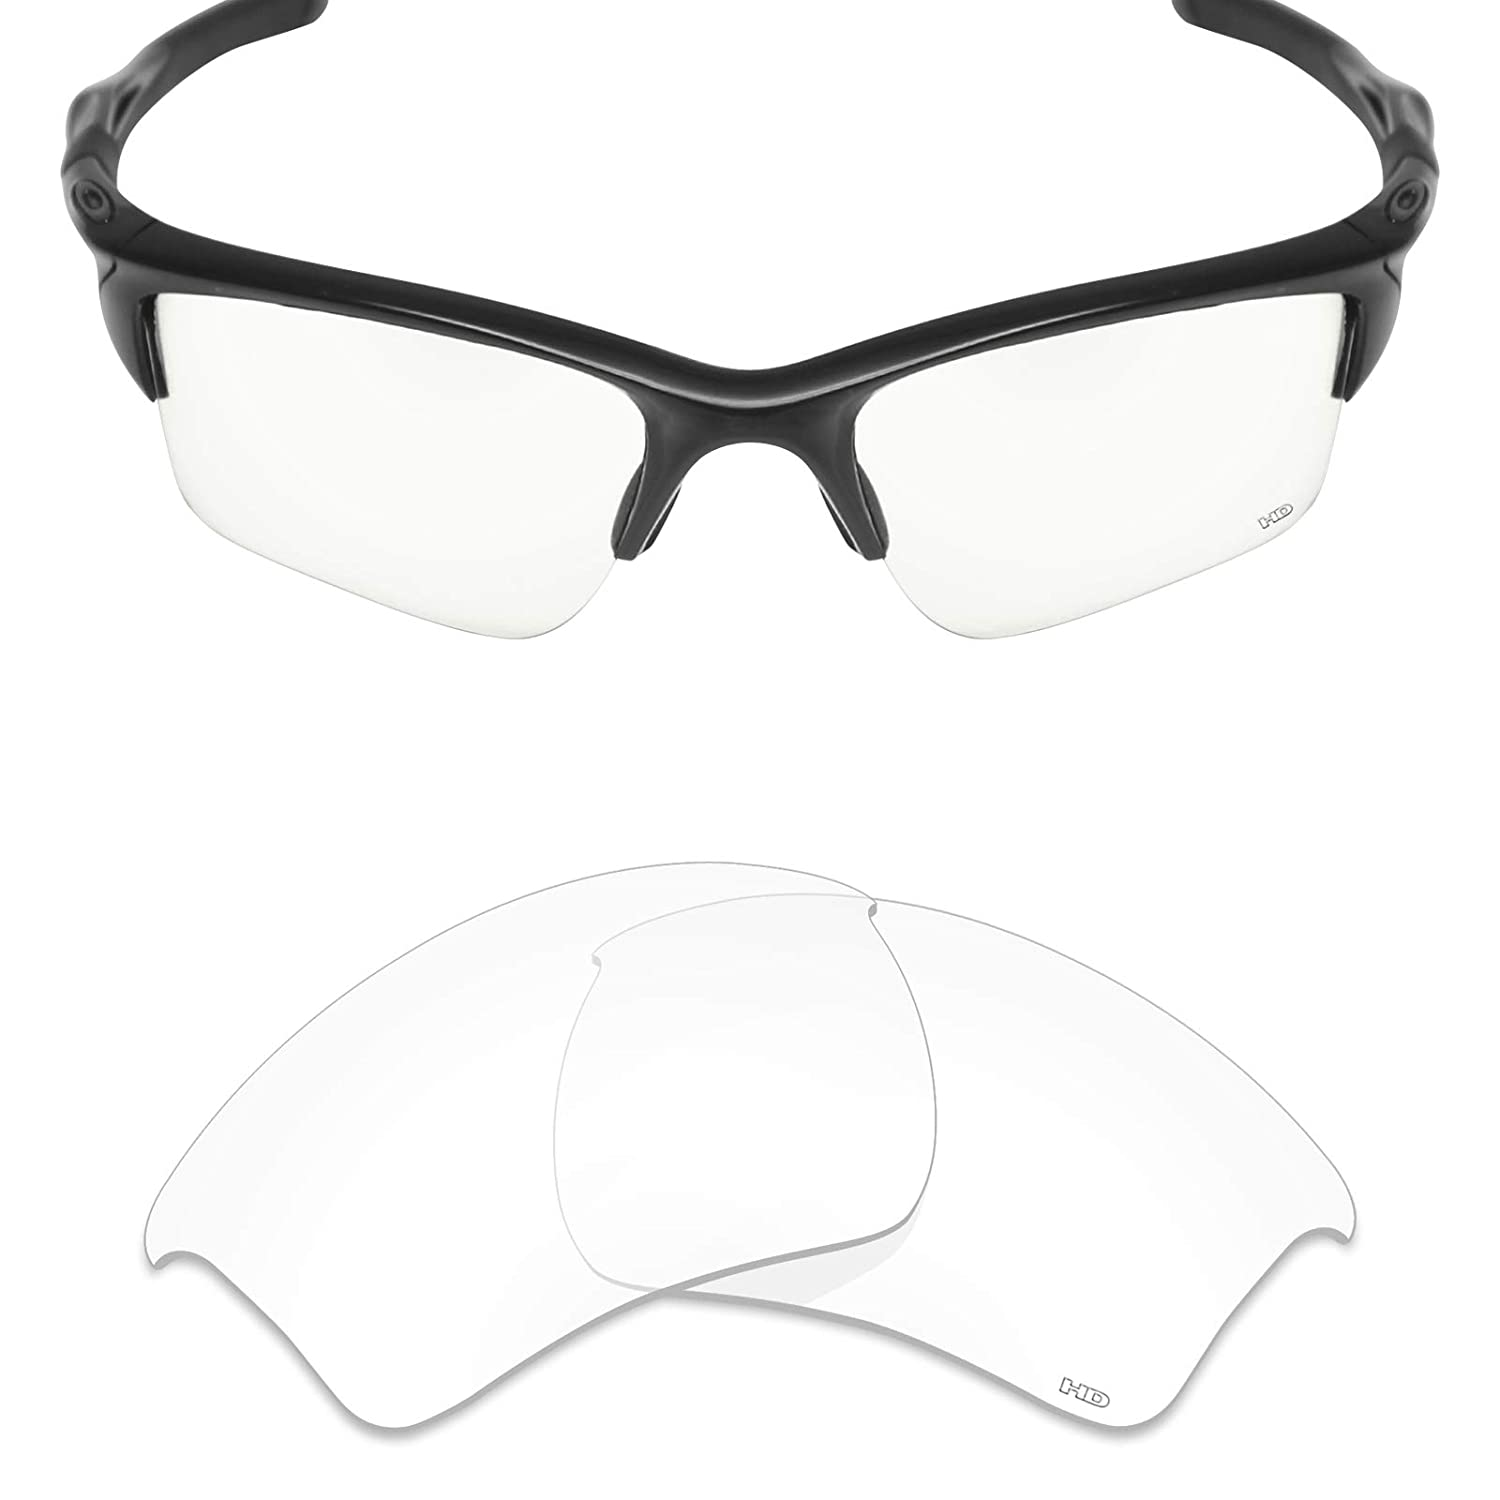 4fb20df292 Amazon.com  Mryok+ Polarized Replacement Lenses for Oakley Half Jacket 2.0  XL - HD Clear  Clothing